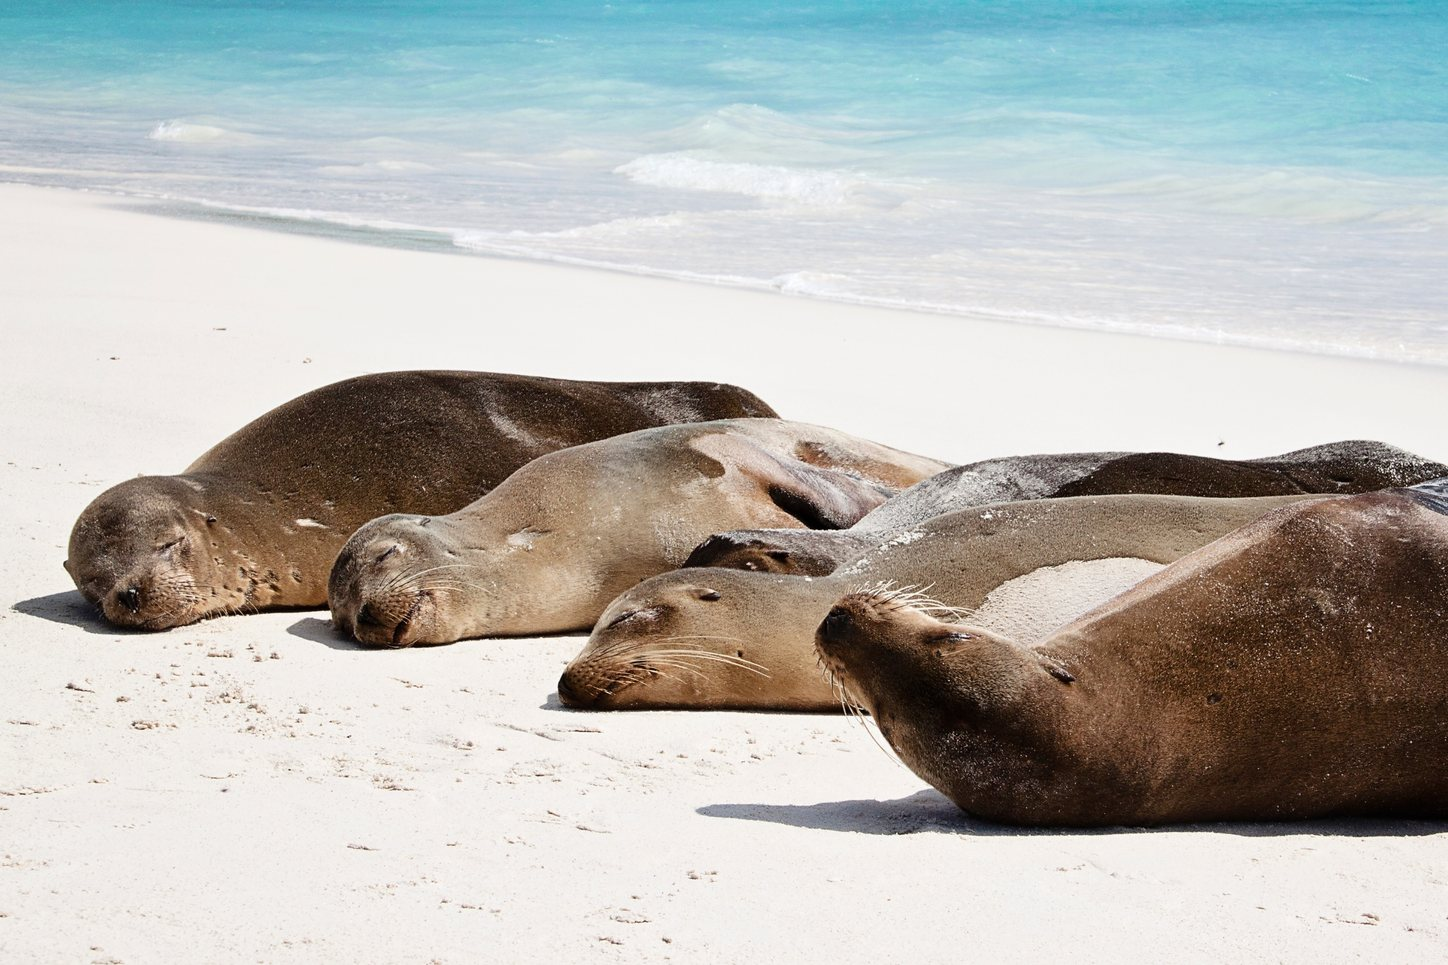 Seals lie on the beach in the Galapagos Island